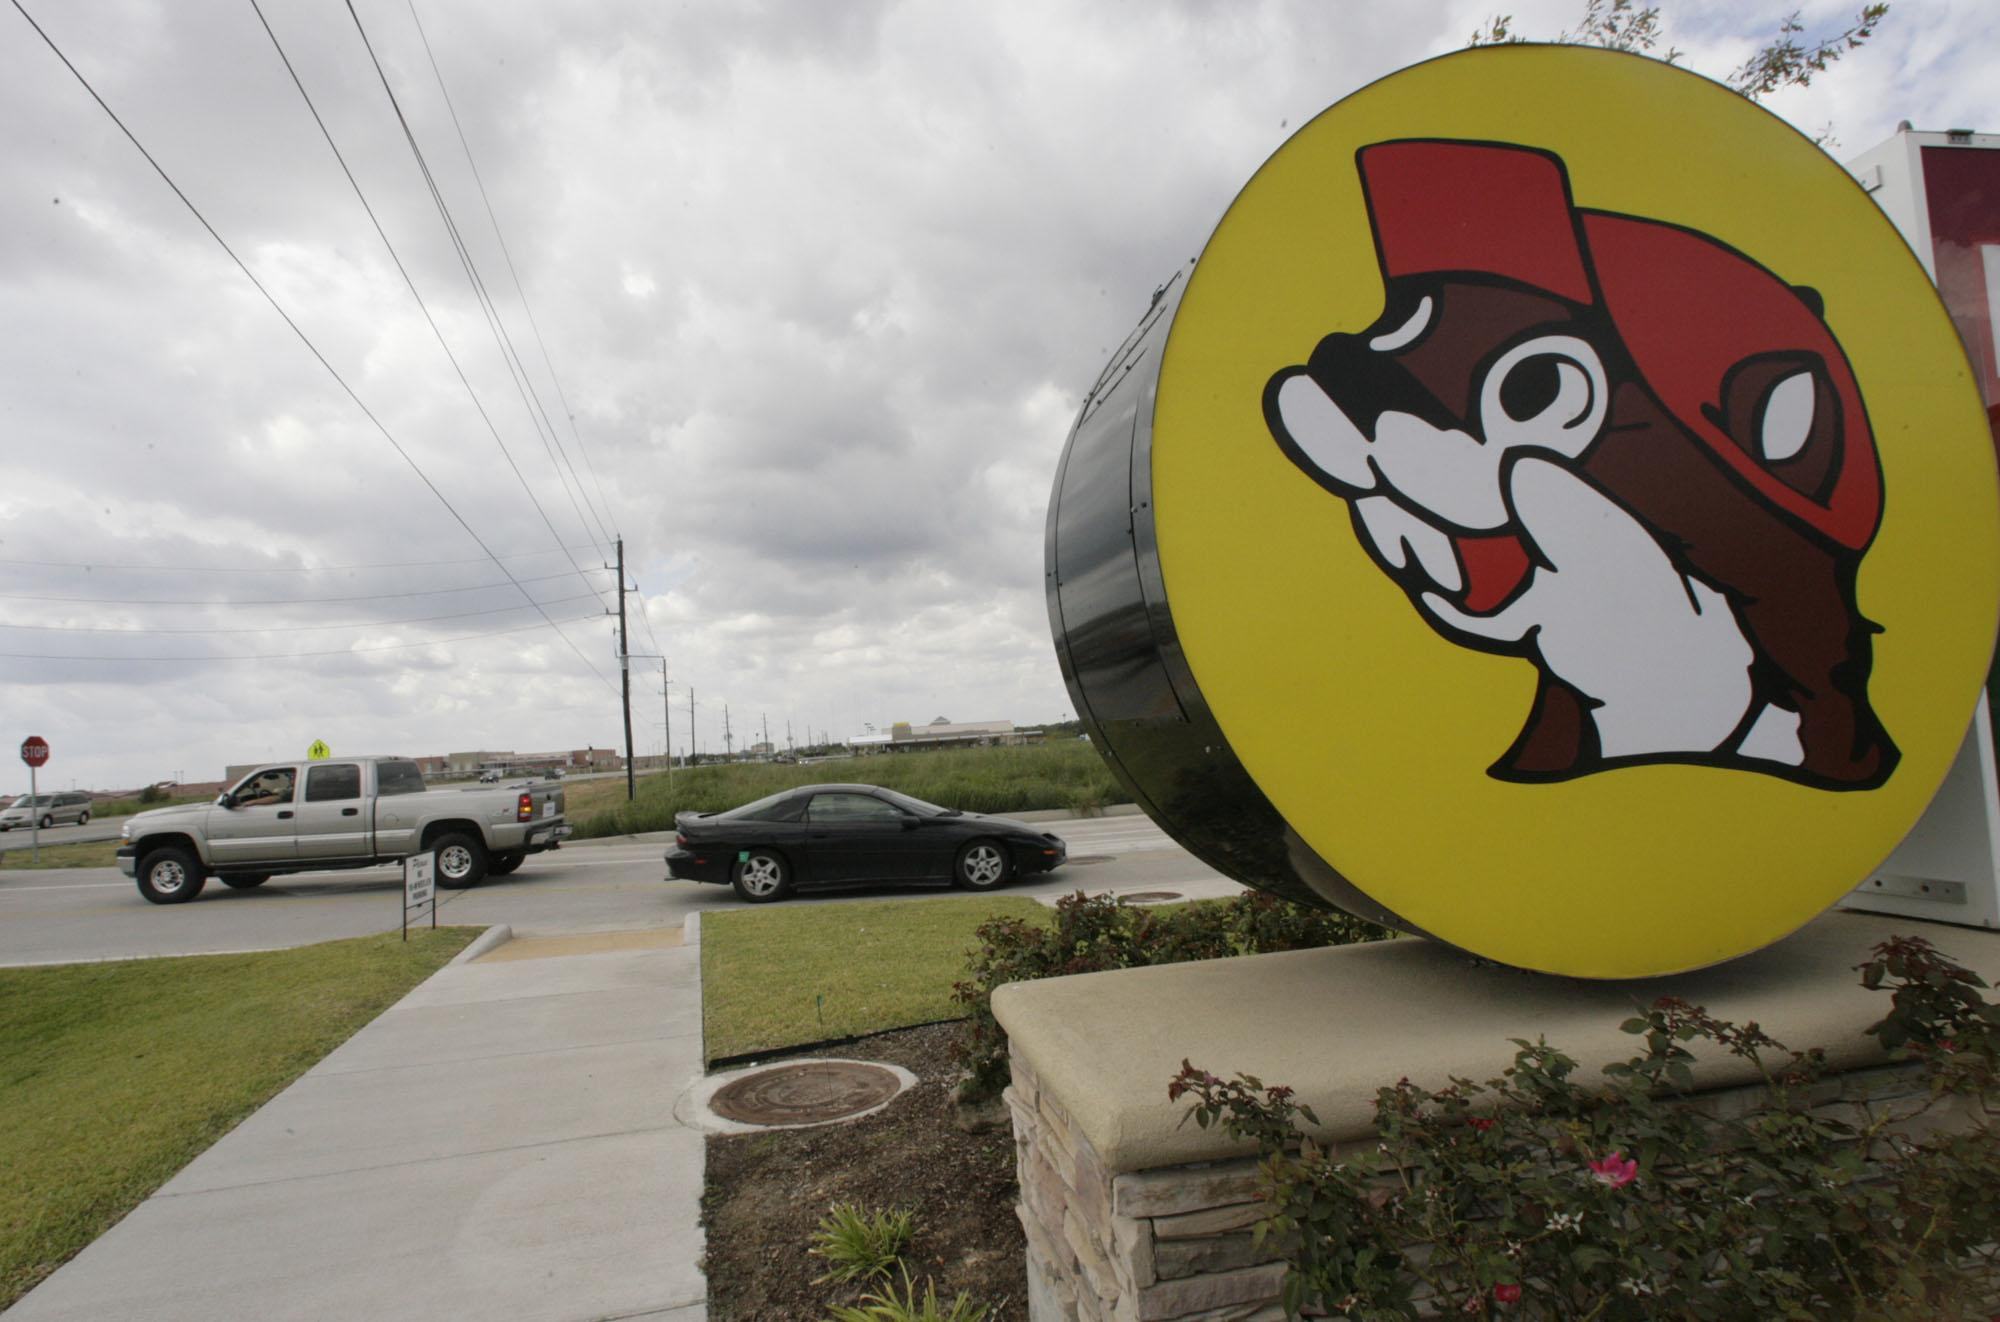 First Buc-ee's outside of Texas opens today